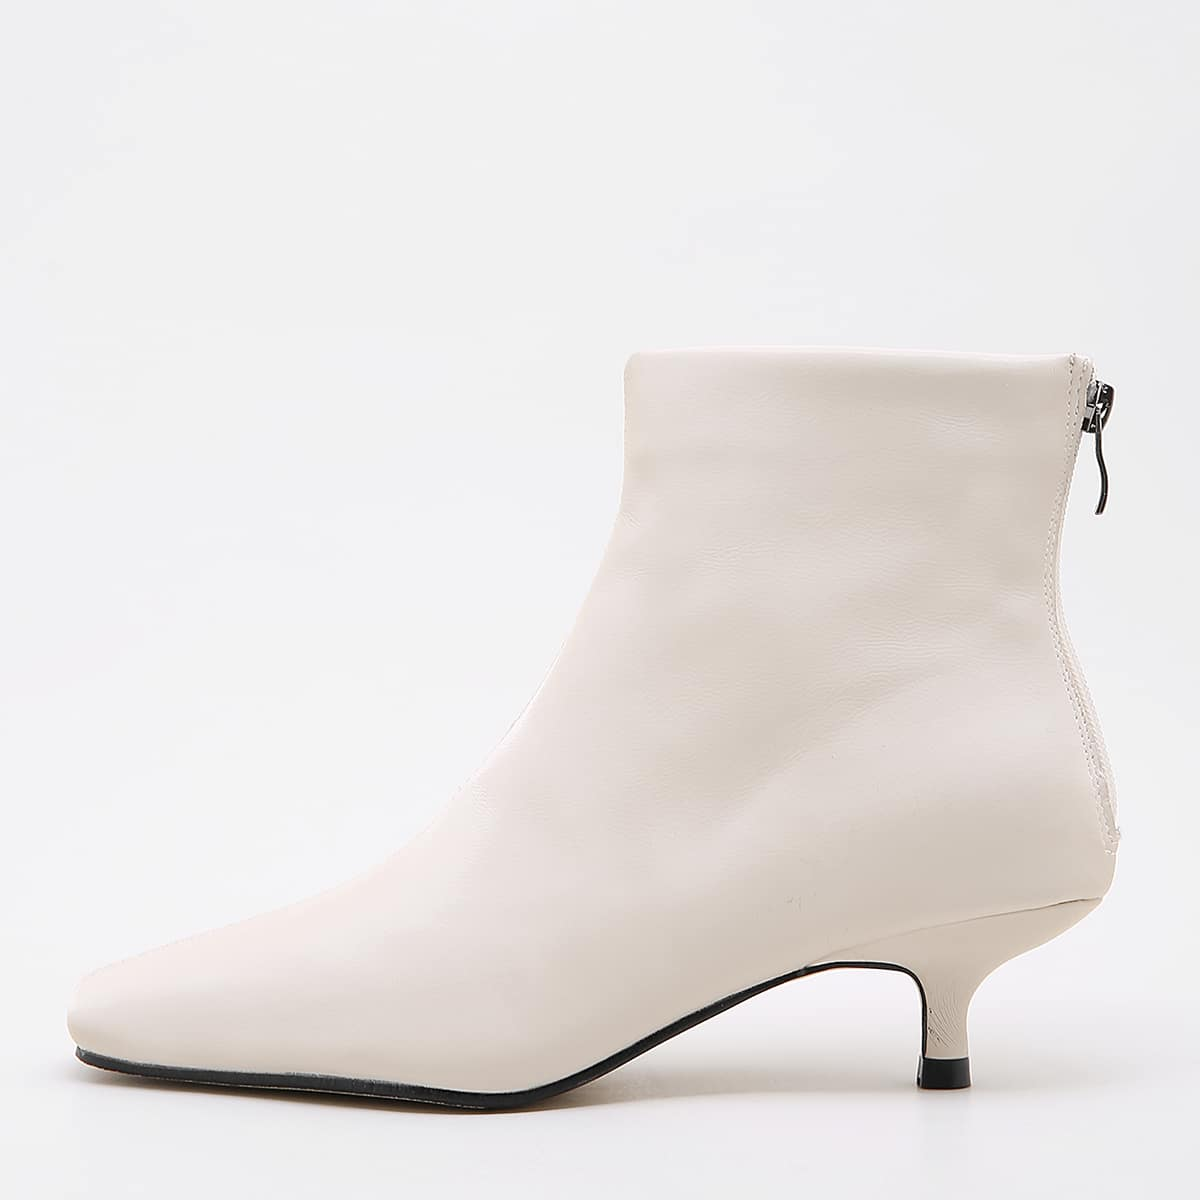 Square Toe Kitten Heeled Ankle Boots